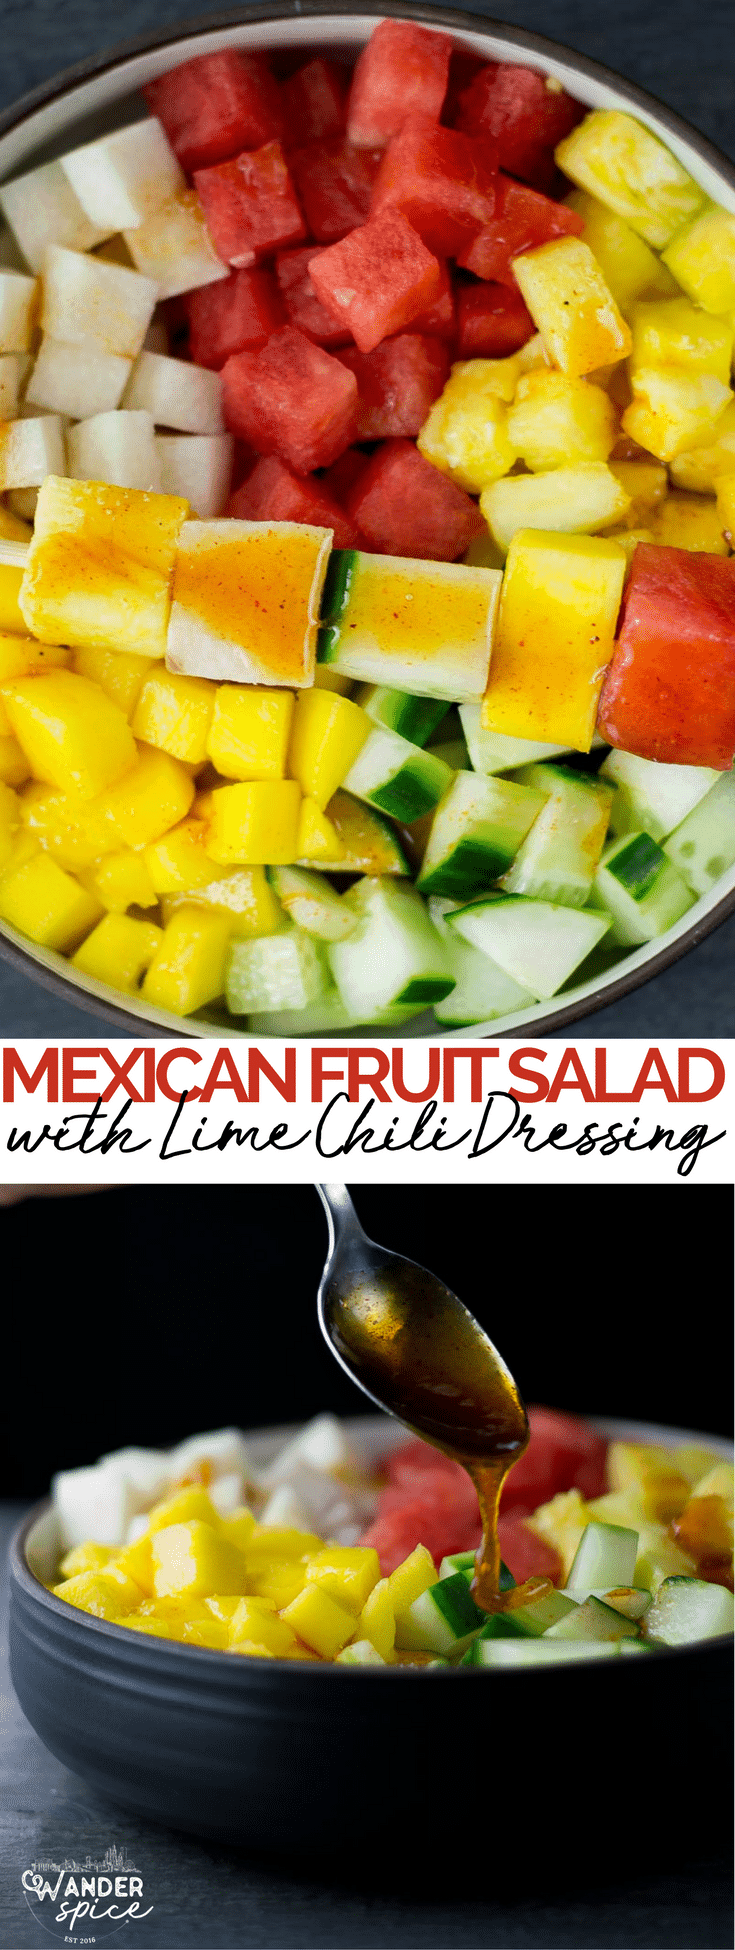 mexican fruit salad recipe | watermelon | cucumbers | jicama | pineapple | mango